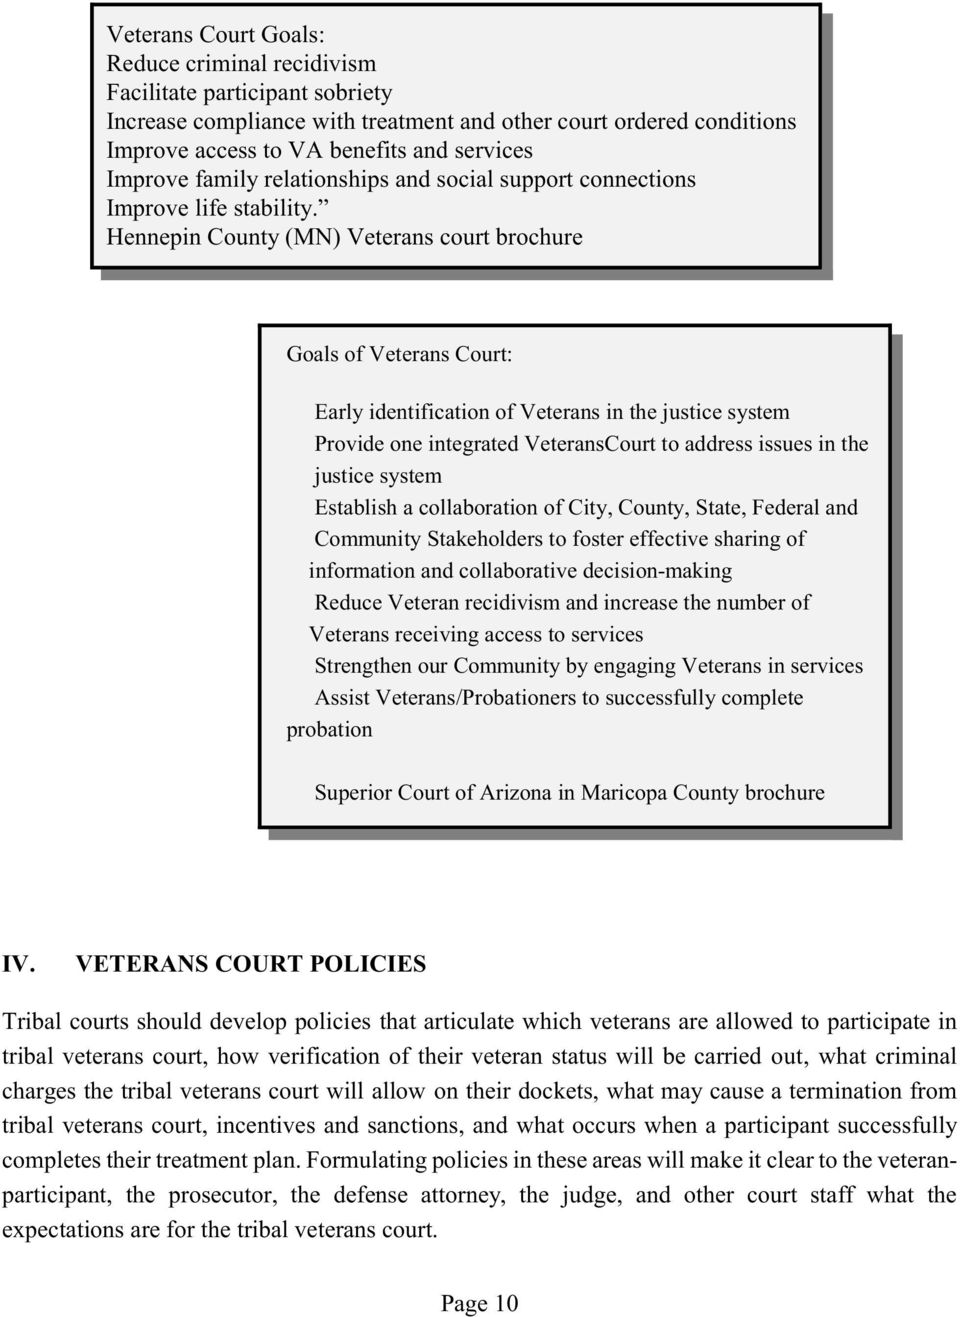 Hennepin County (MN) Veterans court brochure Goals of Veterans Court: Early identification of Veterans in the justice system Provide one integrated VeteransCourt to address issues in the justice